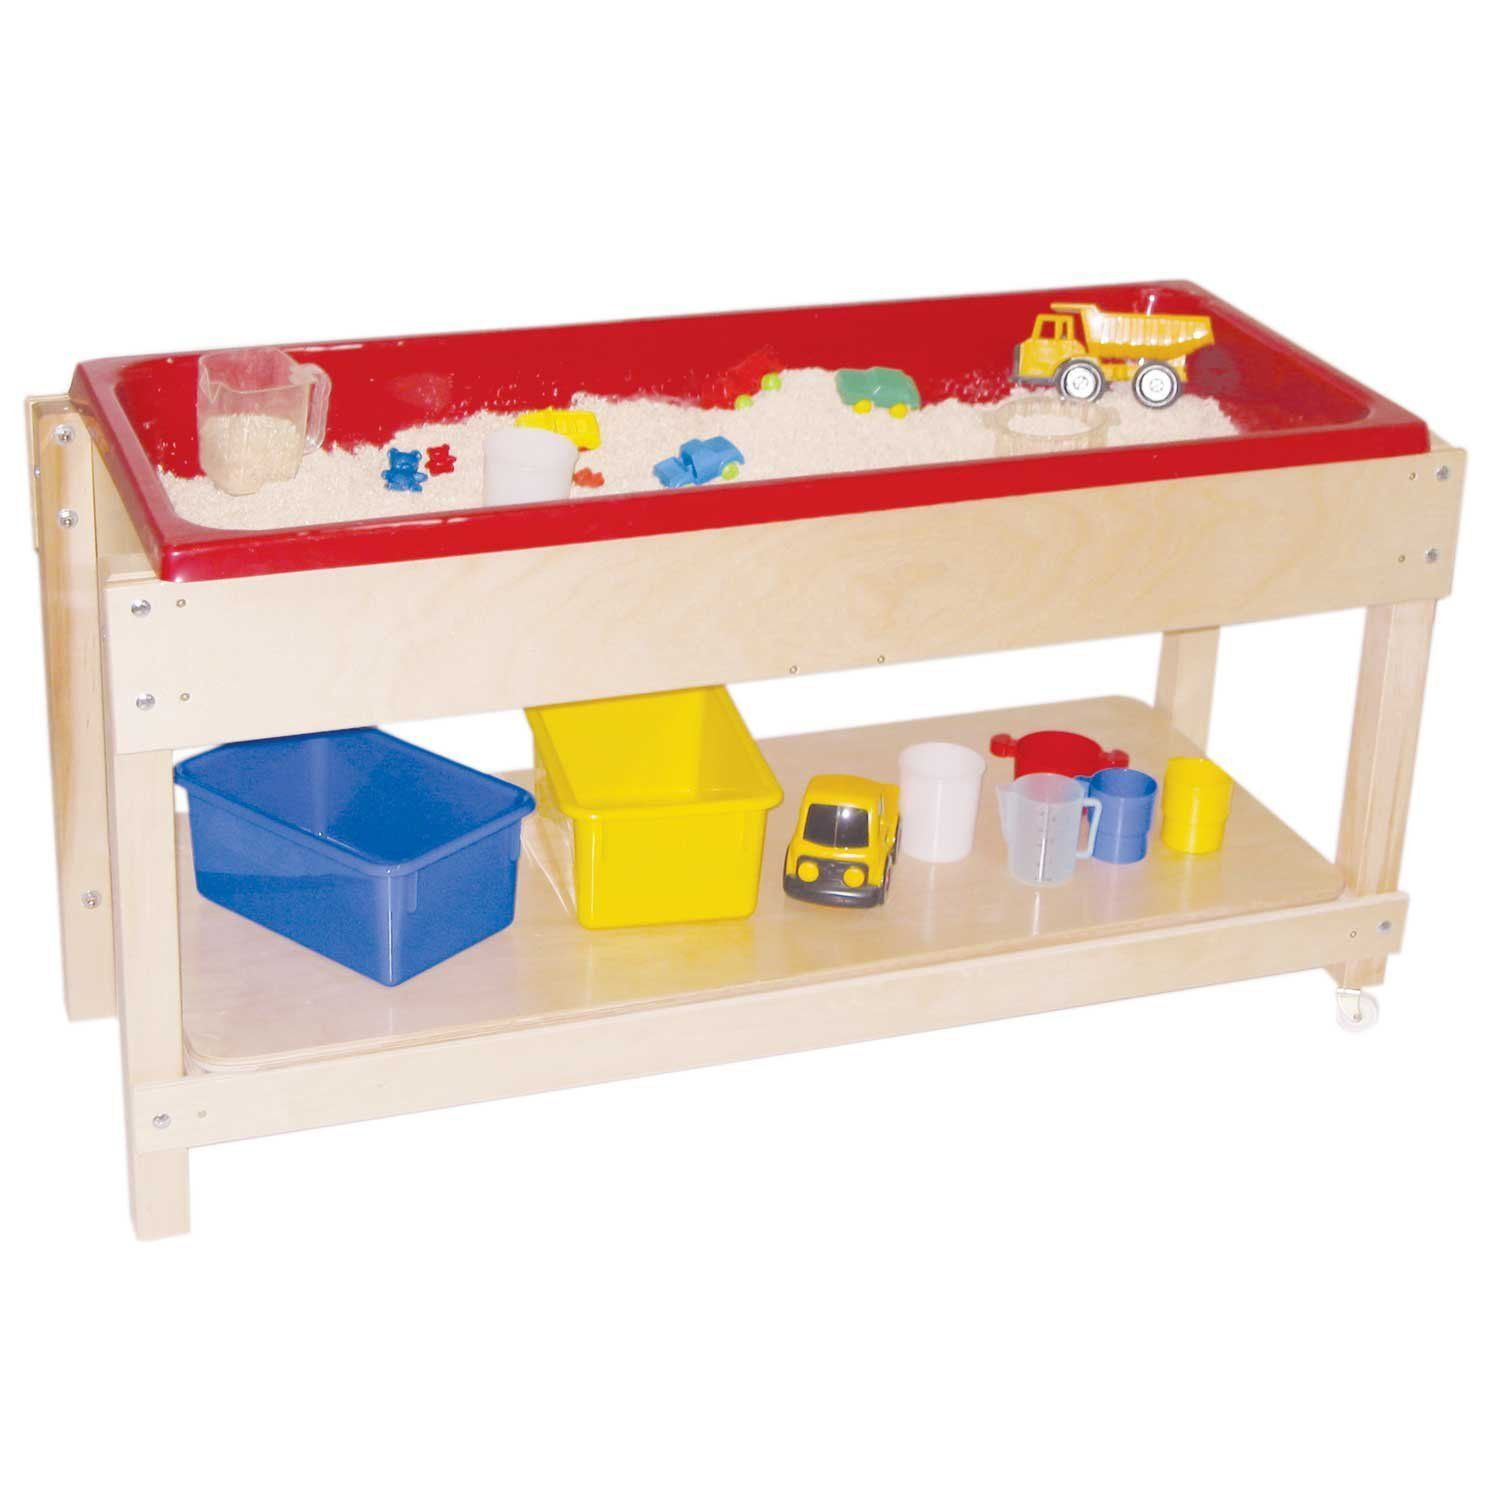 amazon com wood designs wd11810 sand and water table with top shelf rh pinterest ca